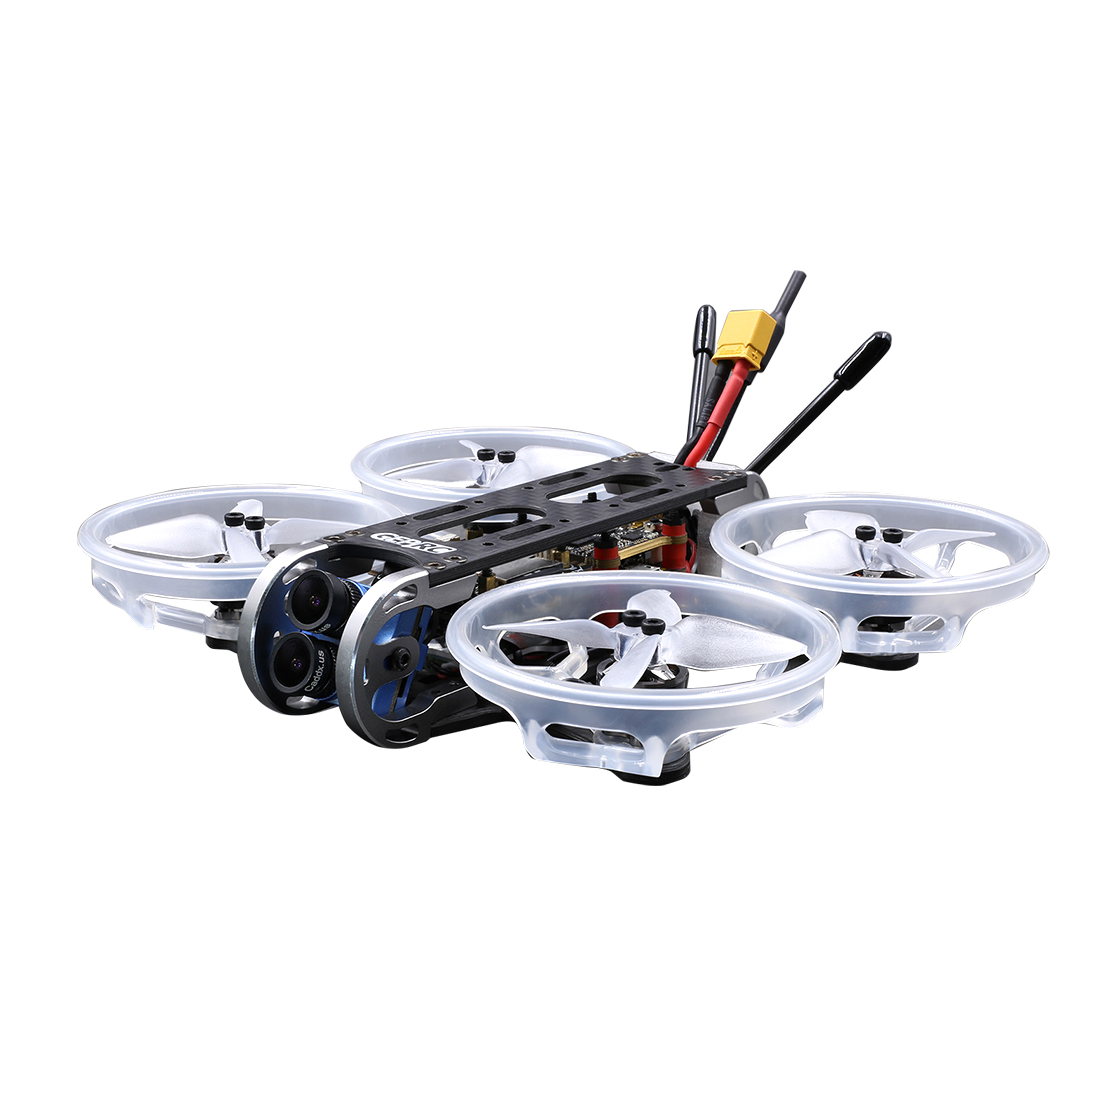 GEPRC CinePro 4K BNF/PNP FPV Racing Drone 4S Compatiable with F722/F405 Flight Controller 115mm 5.8g 48CH 500mW VTX-in Parts & Accessories from Toys & Hobbies